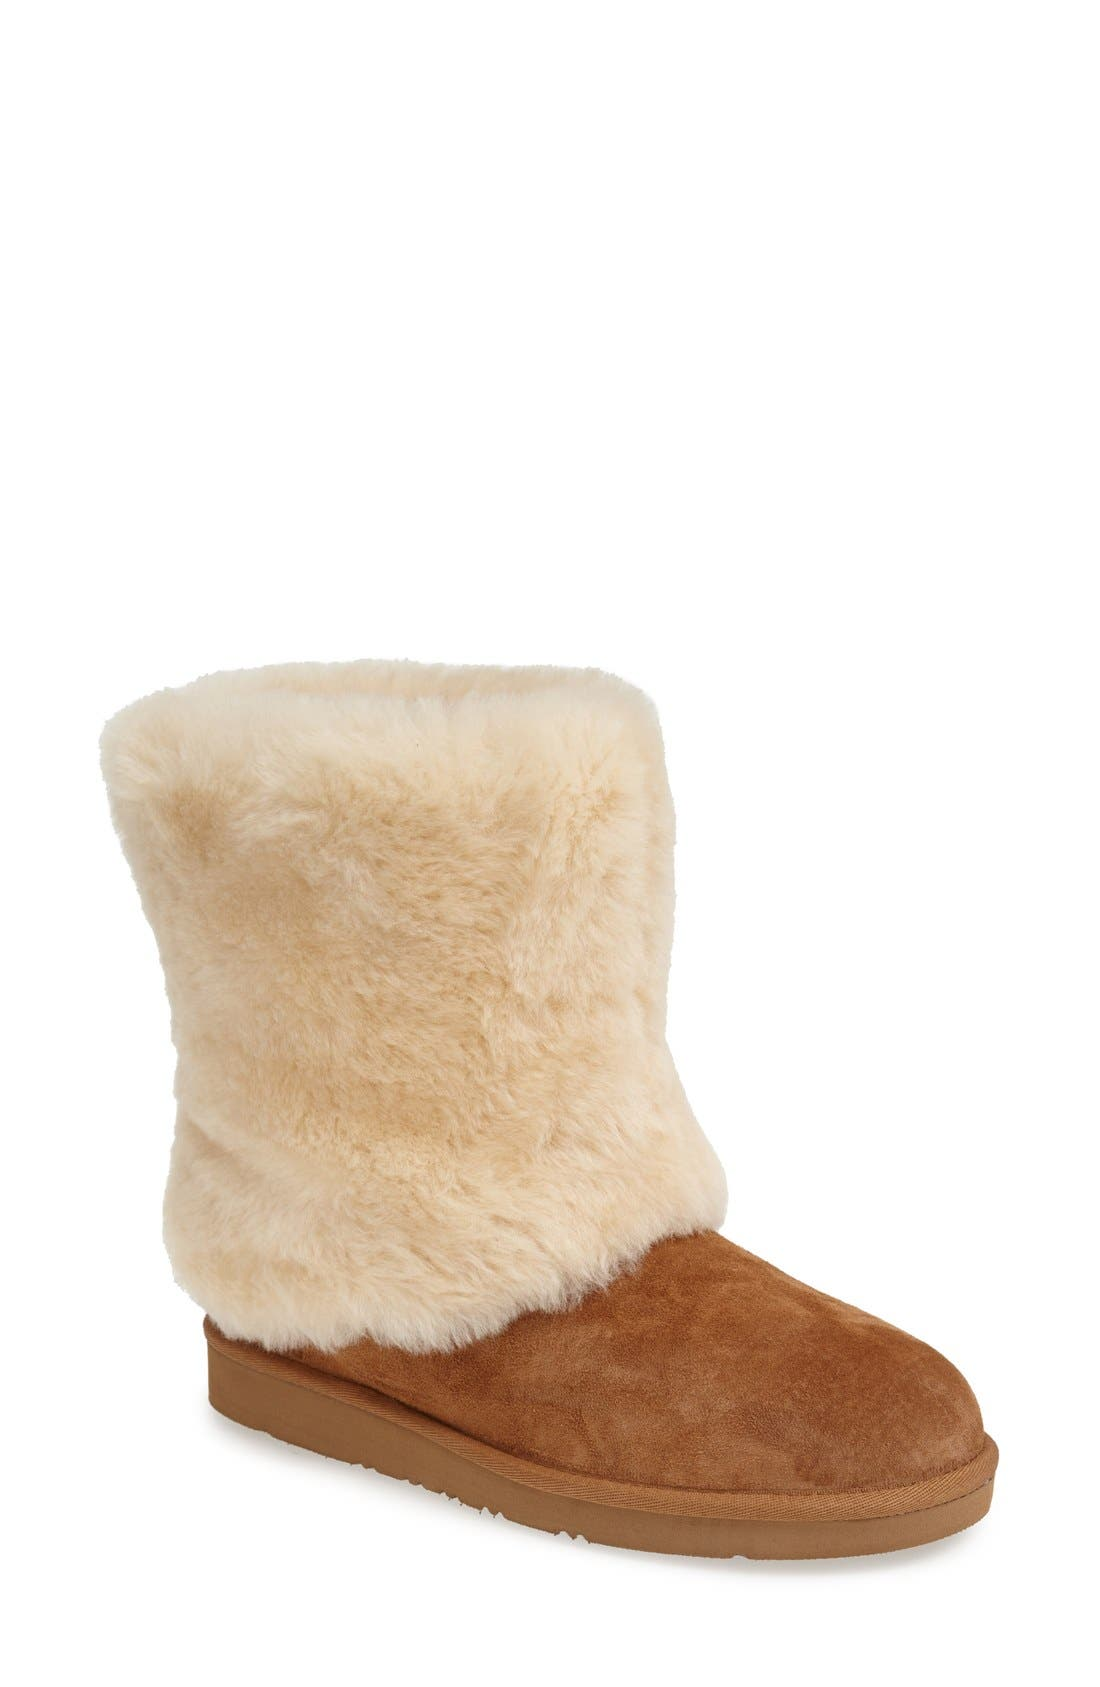 Main Image - UGG® 'Patten' Water Resistant Silkee™ Suede Shearling Cuff Boot (Women)